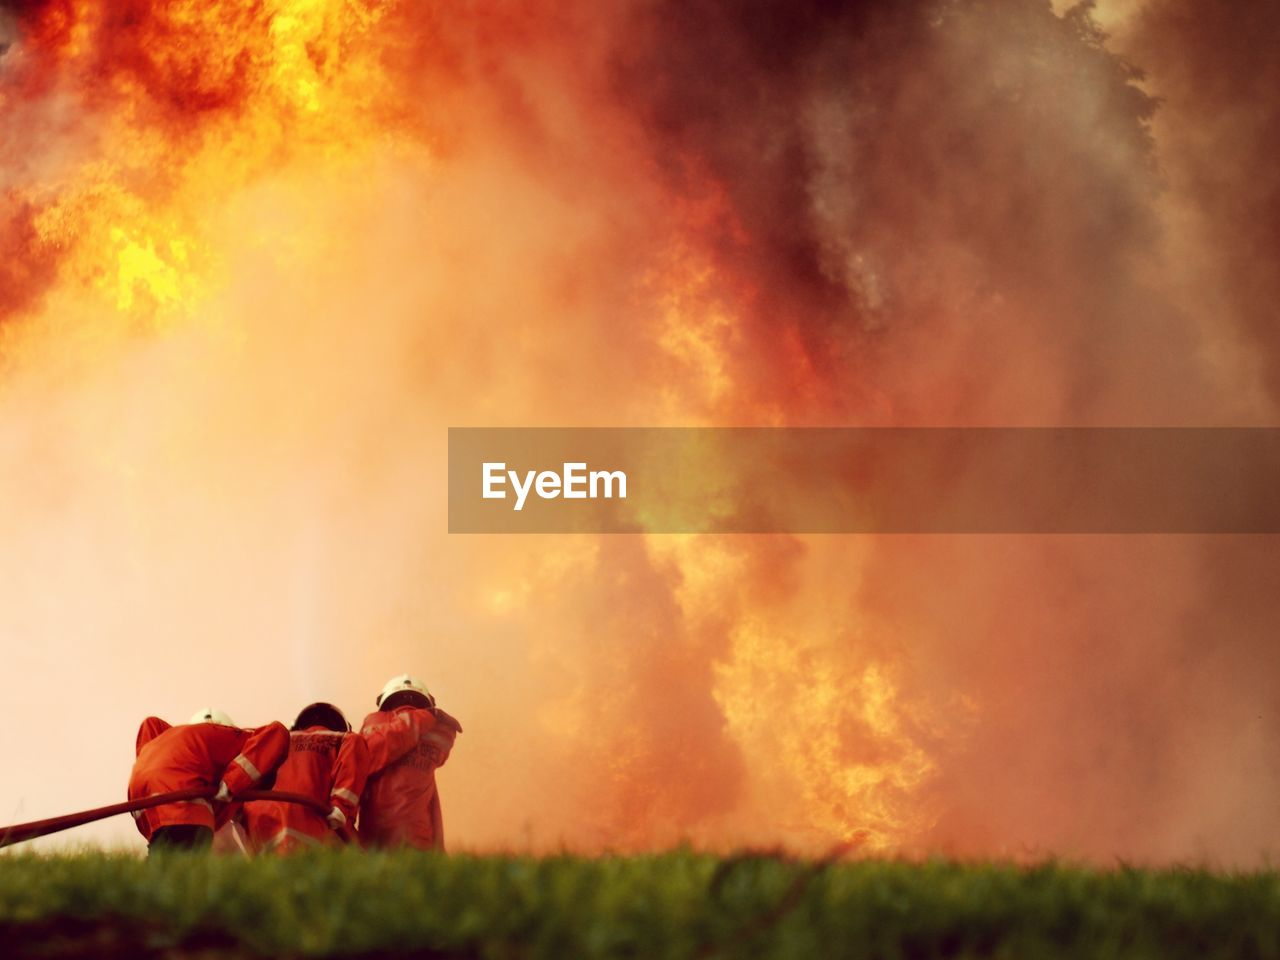 burning, fire, fire - natural phenomenon, grass, flame, nature, plant, land, field, heat - temperature, smoke - physical structure, orange color, accidents and disasters, environment, outdoors, one person, sign, warning sign, day, pollution